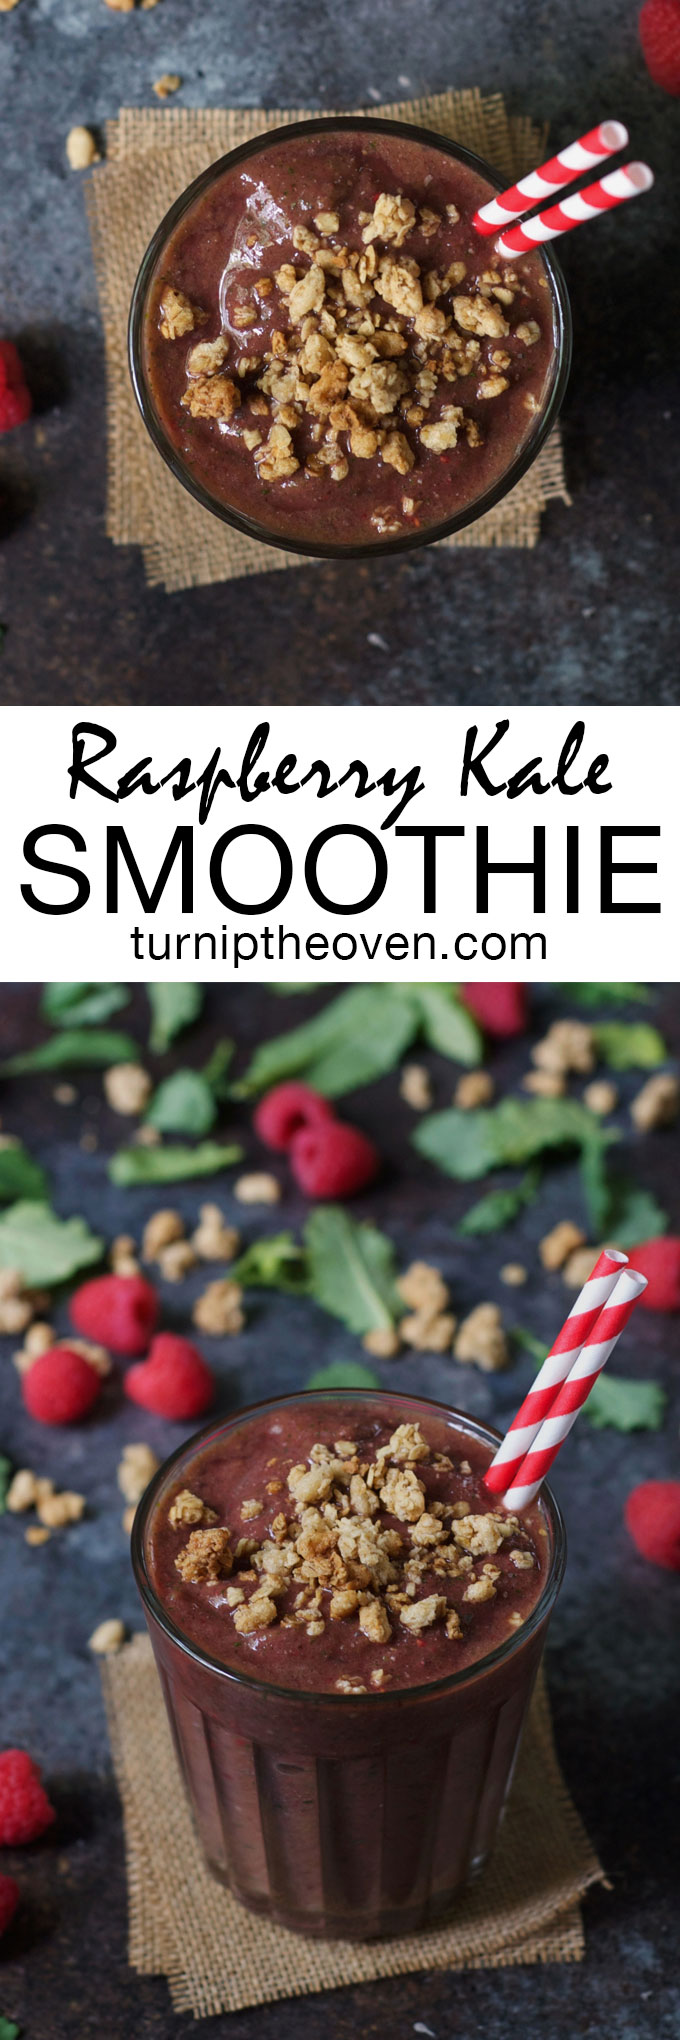 Coconut water makes this healthy vegan, gluten-free raspberry kale smoothie incredibly refreshing and super hydrating. The perfect post-workout breakfast or snack!